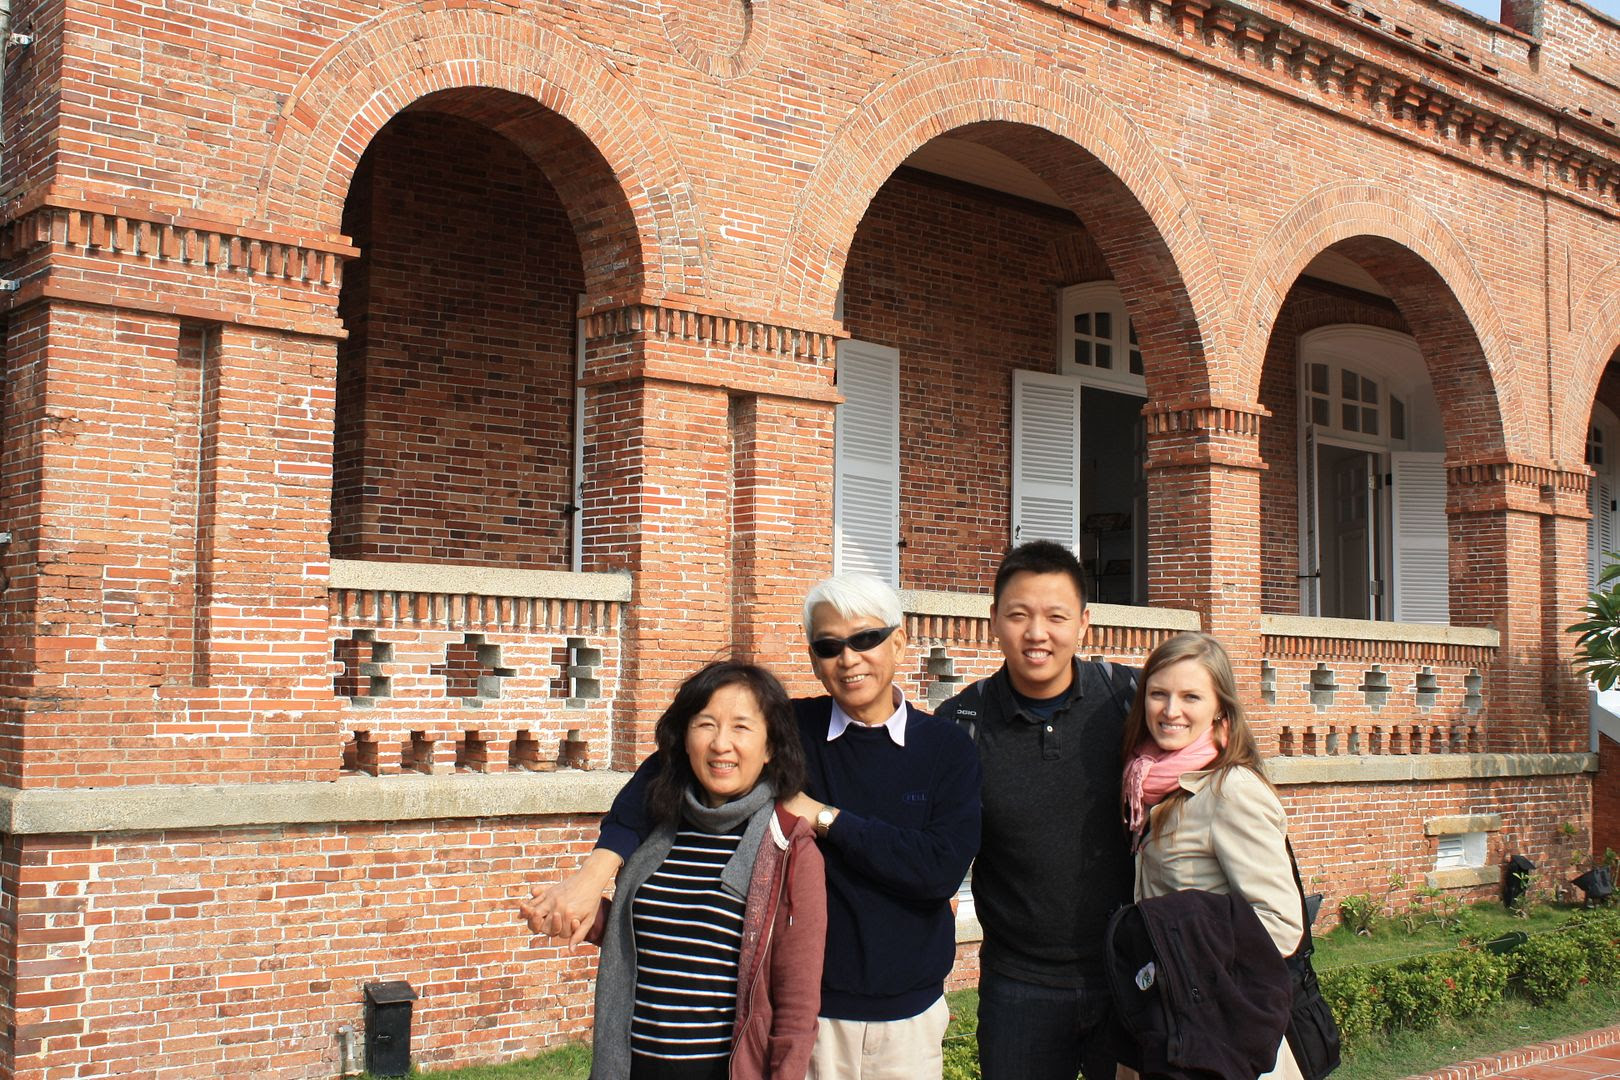 Us at the Former British Consulate in Kaohsiung